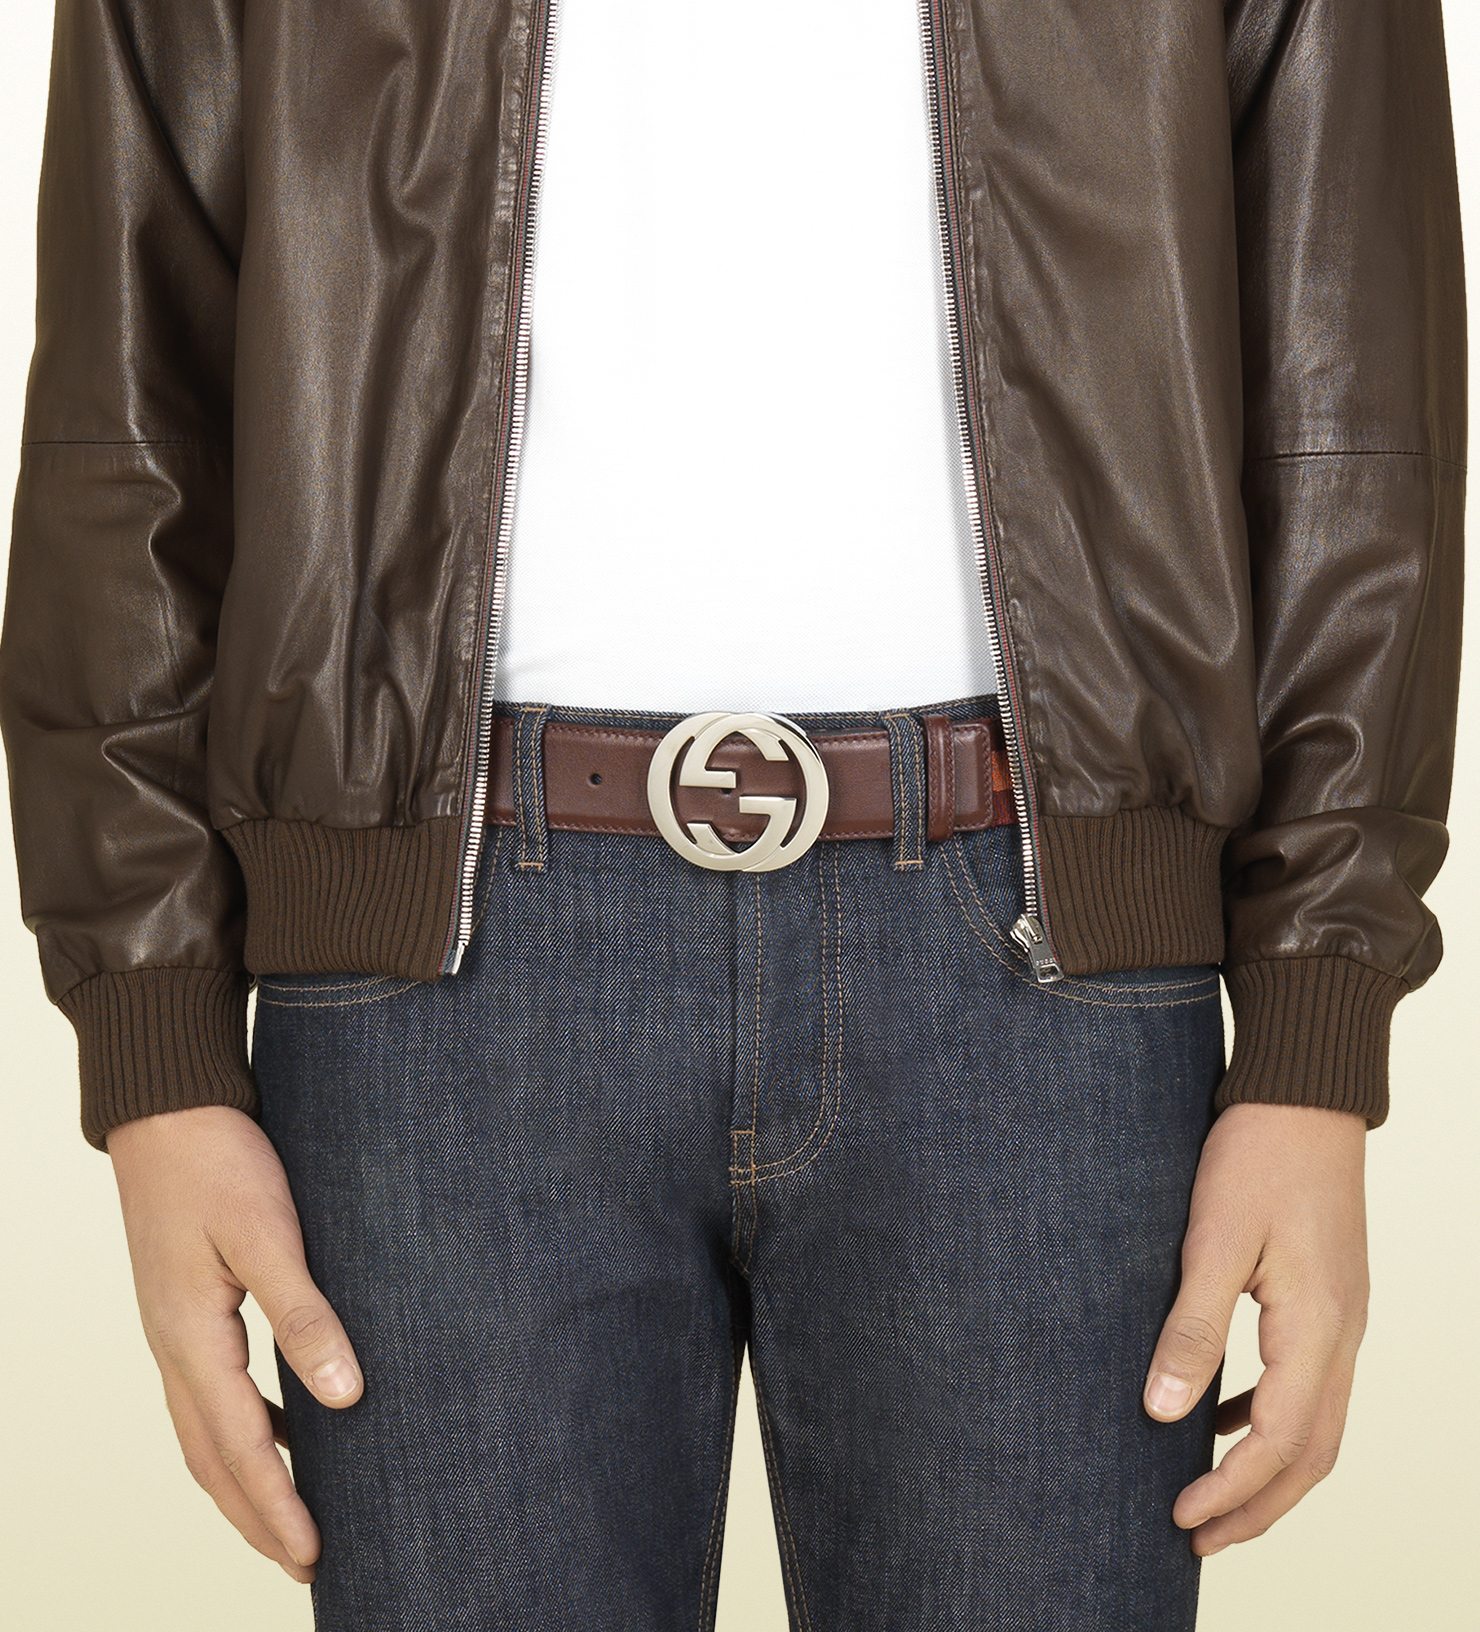 Gucci Belt For Men Brown